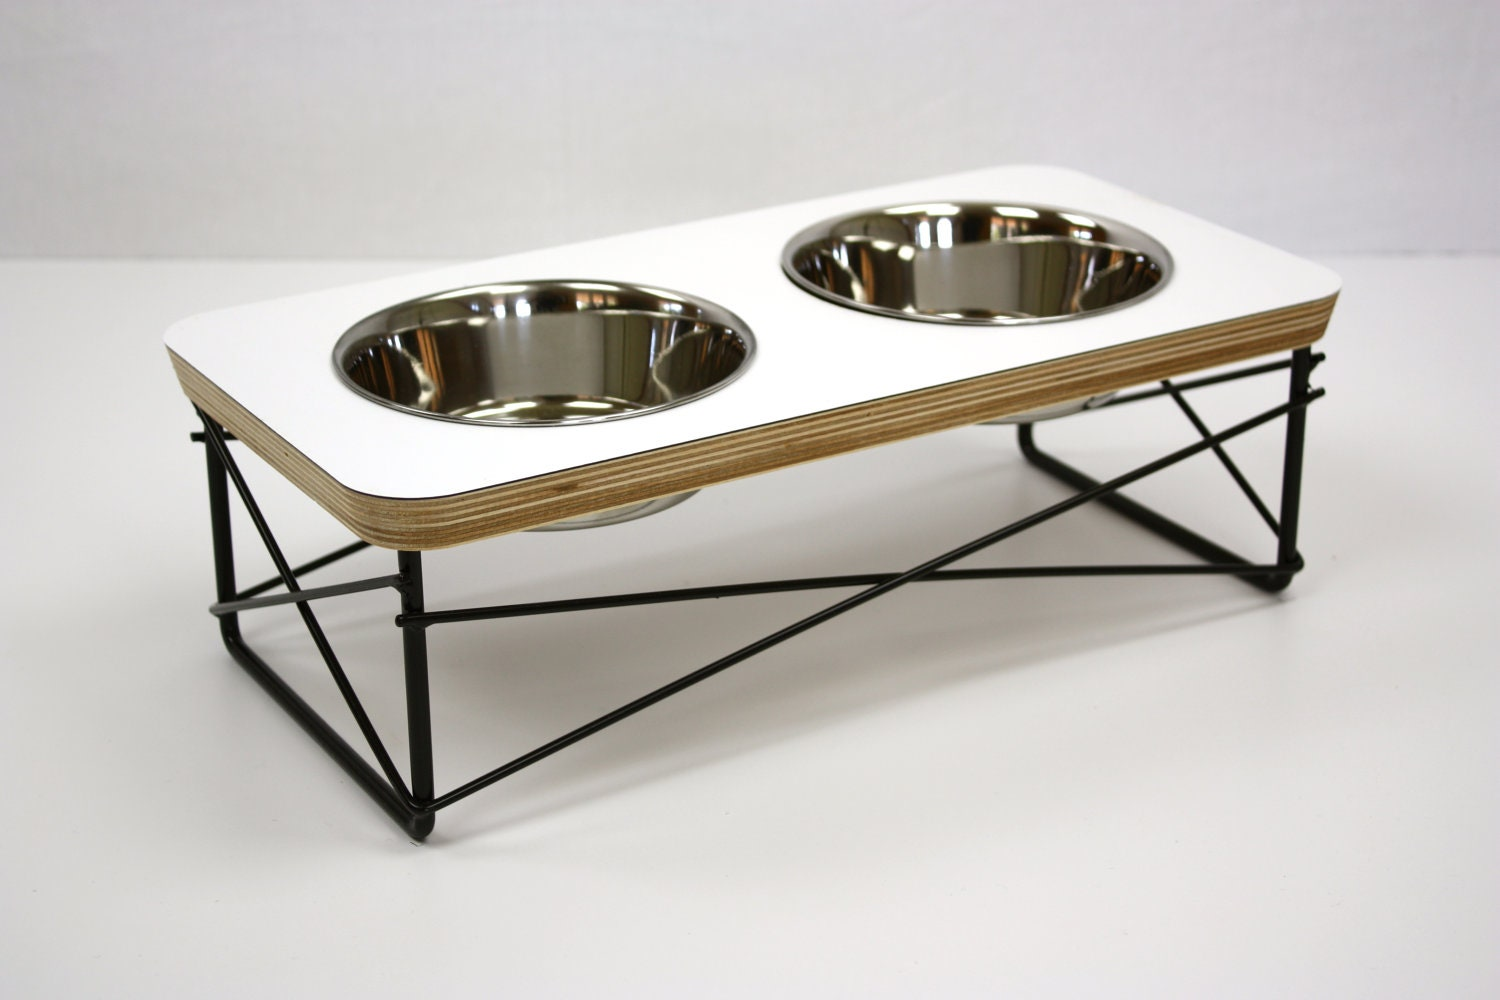 modern dog feeder modern dog bowl wake the tree modern dog  - modern pet feeder dog bowl or cat bowl elevated feeder stand